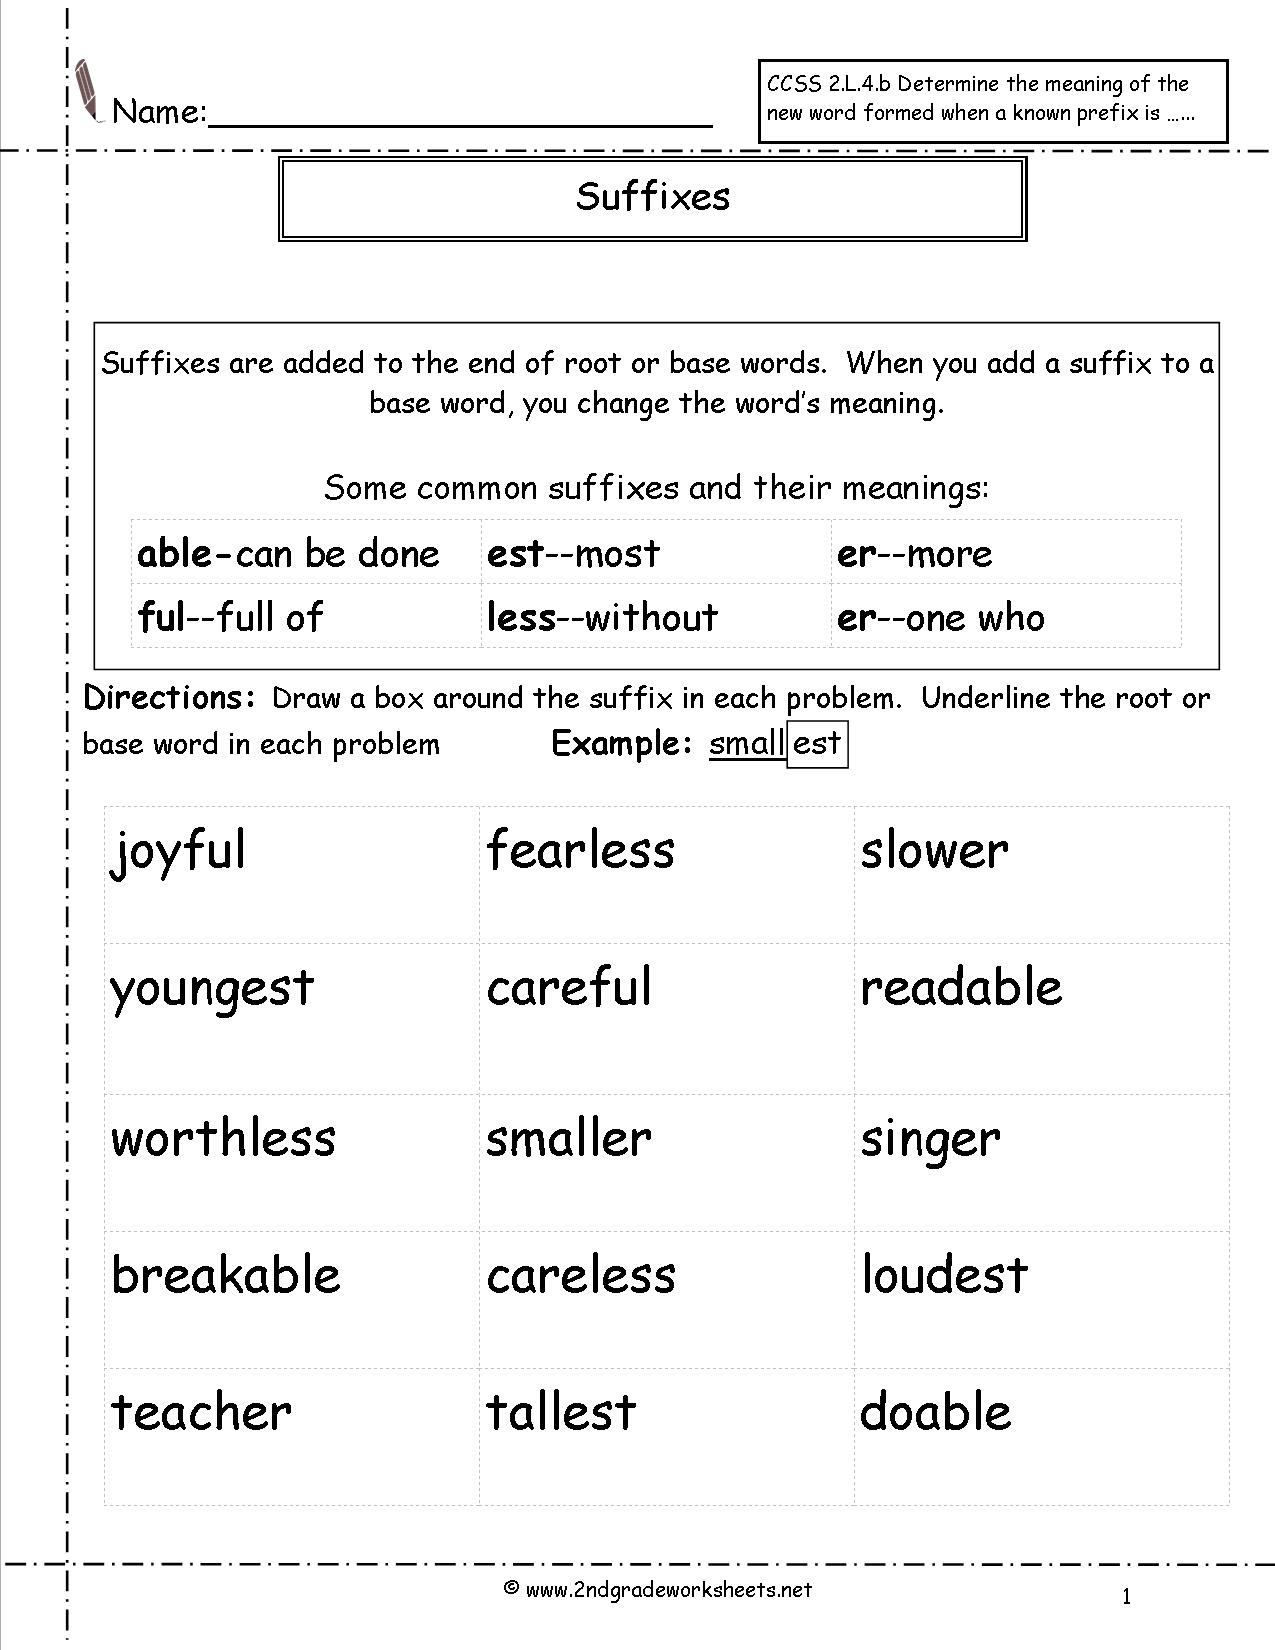 18 Best Images Of Prefix Suffix Worksheets 4th Grade